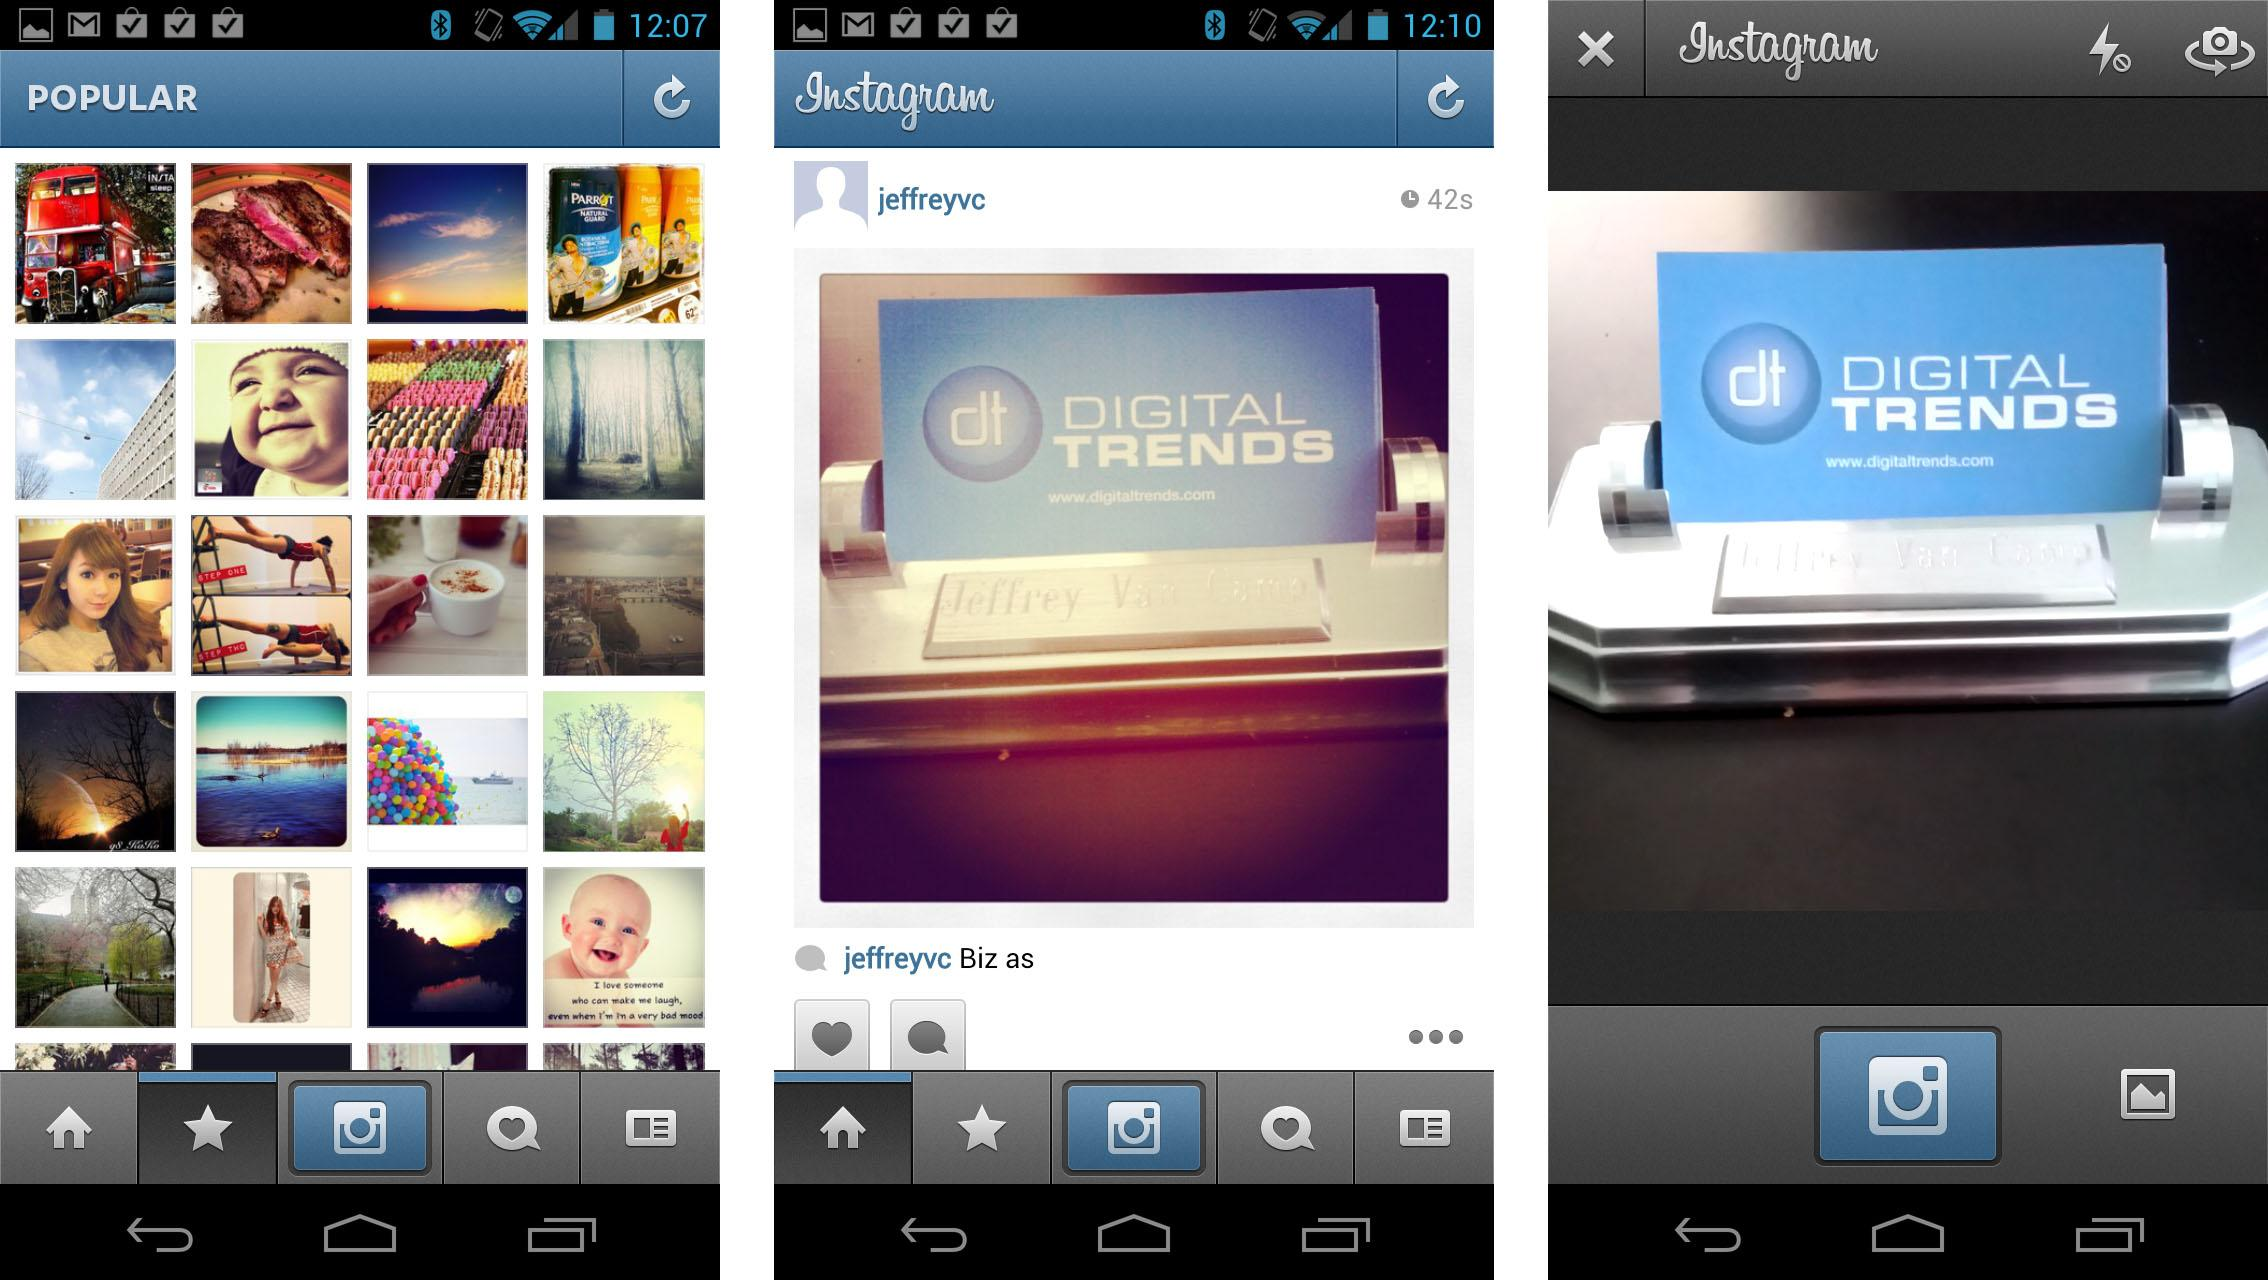 3 Ways to Access Instagram on a PC - wikiHow